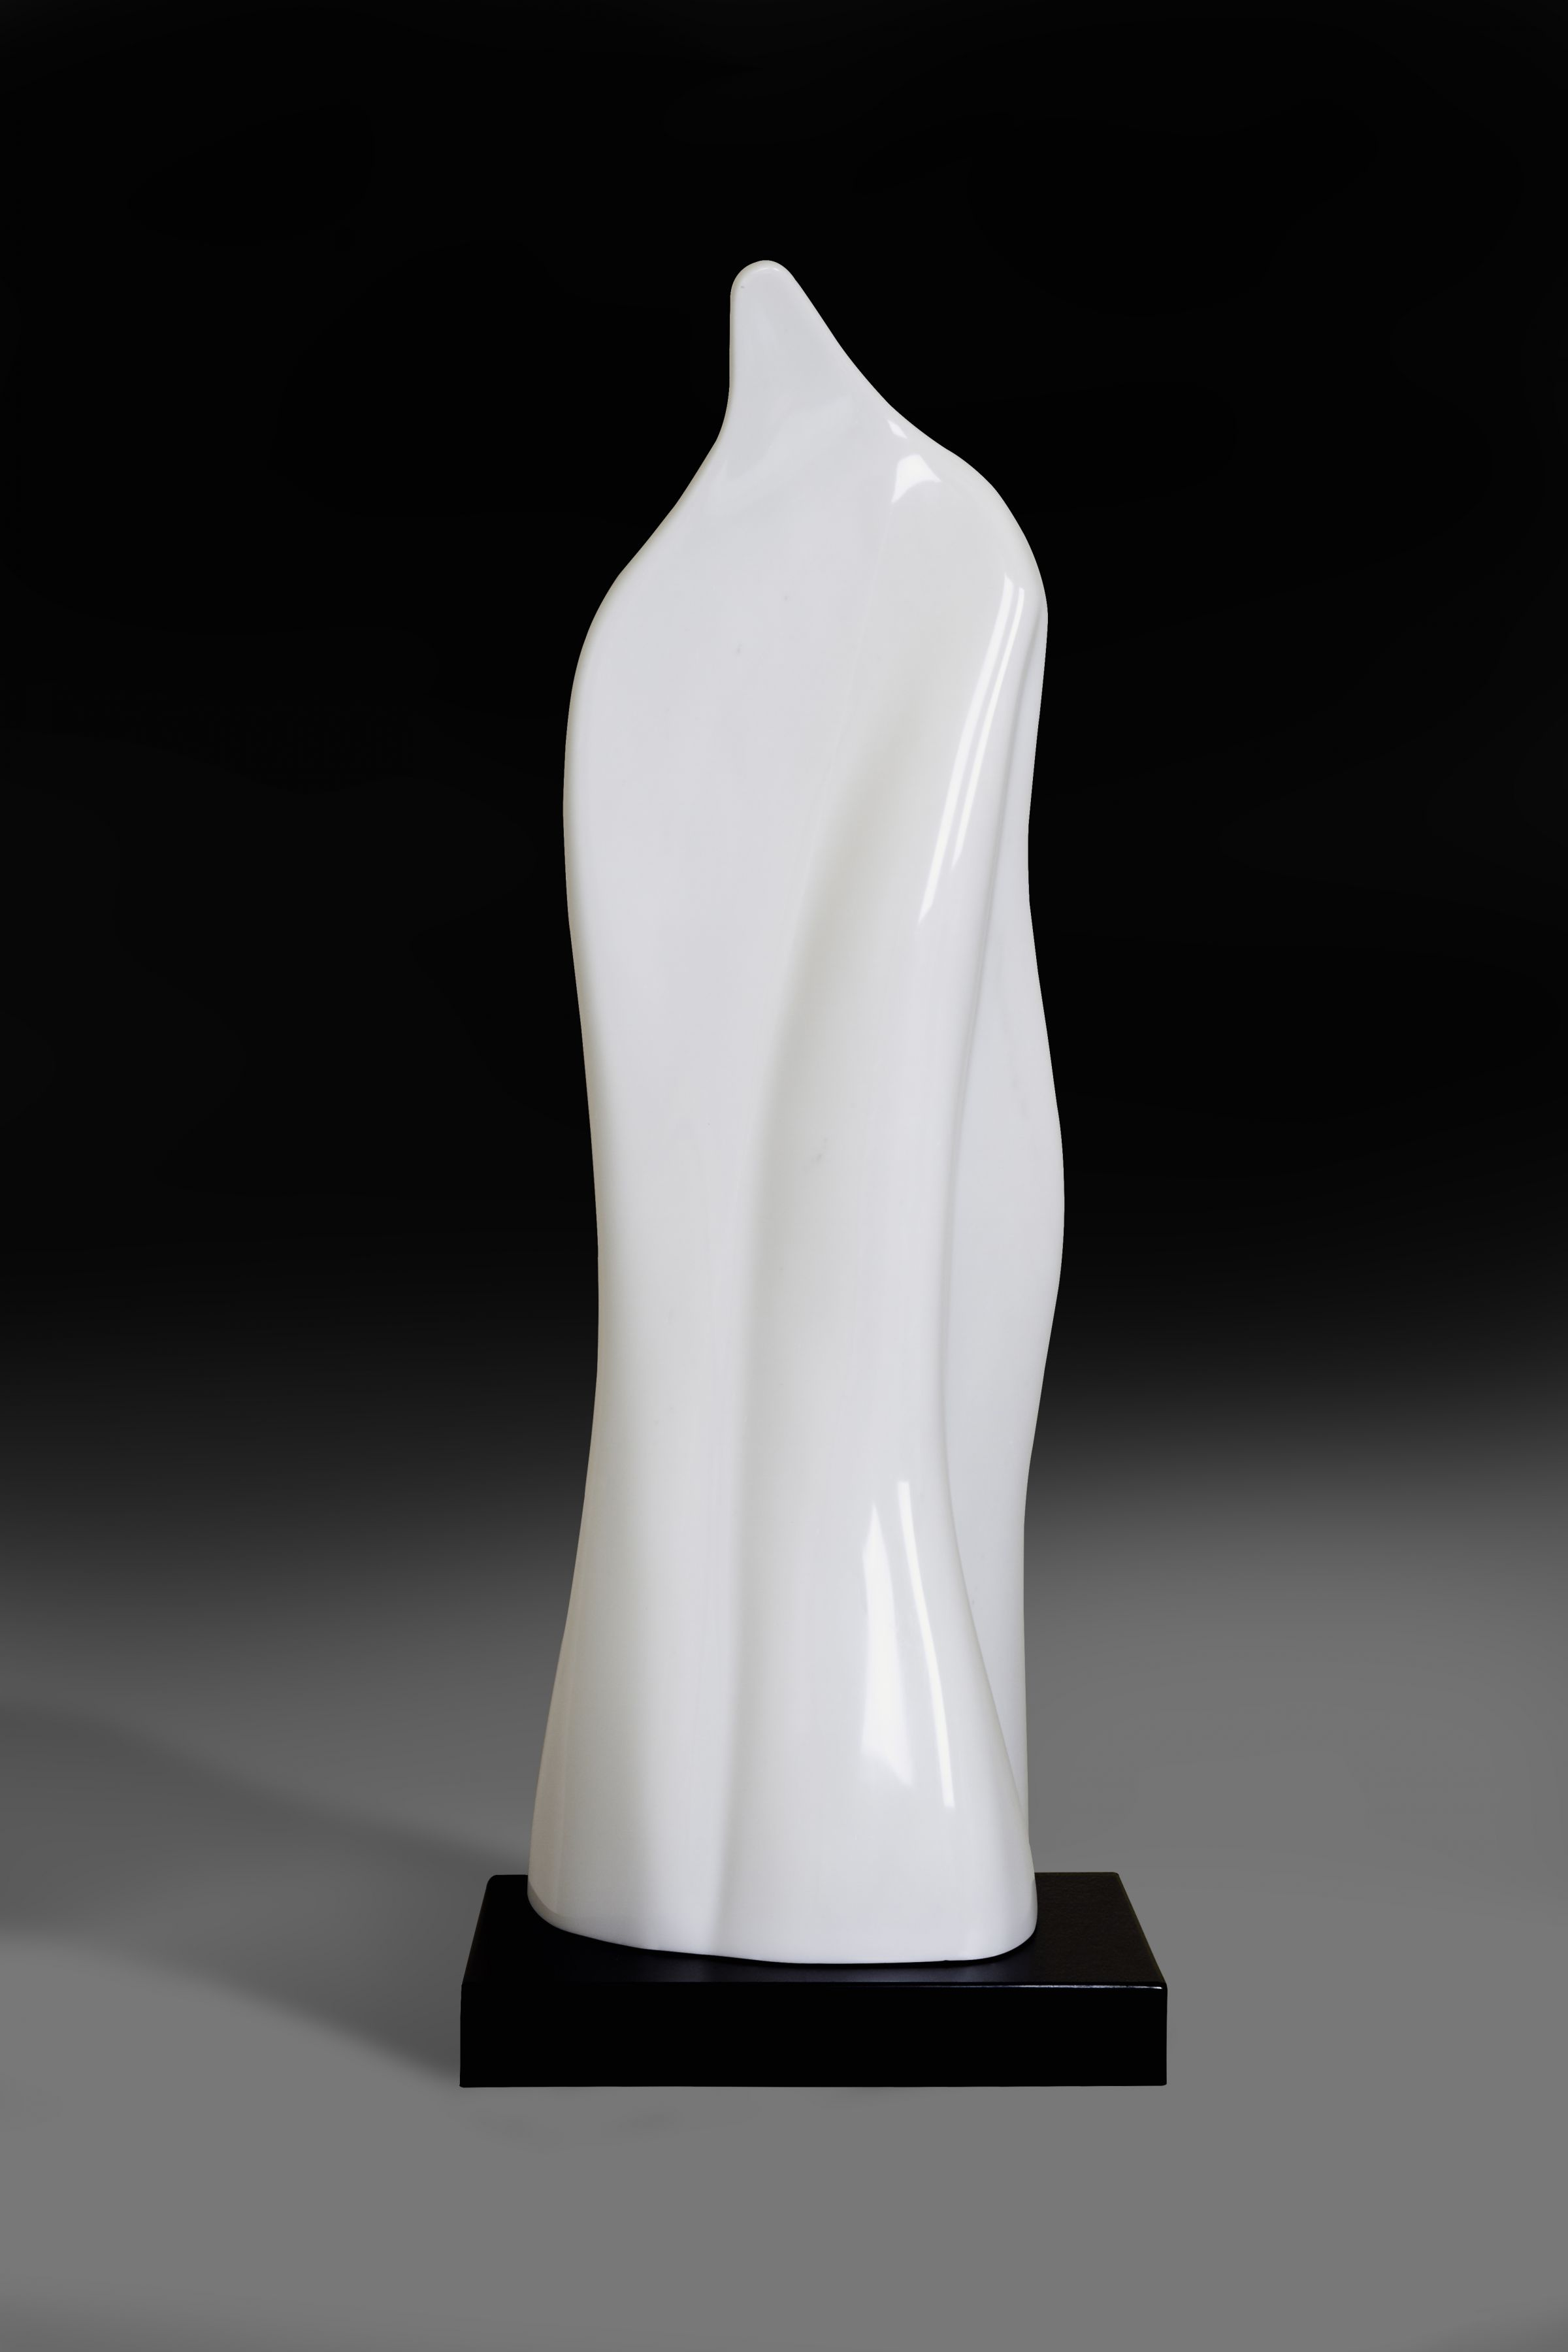 Charlie Kaplan, Ghost, front view